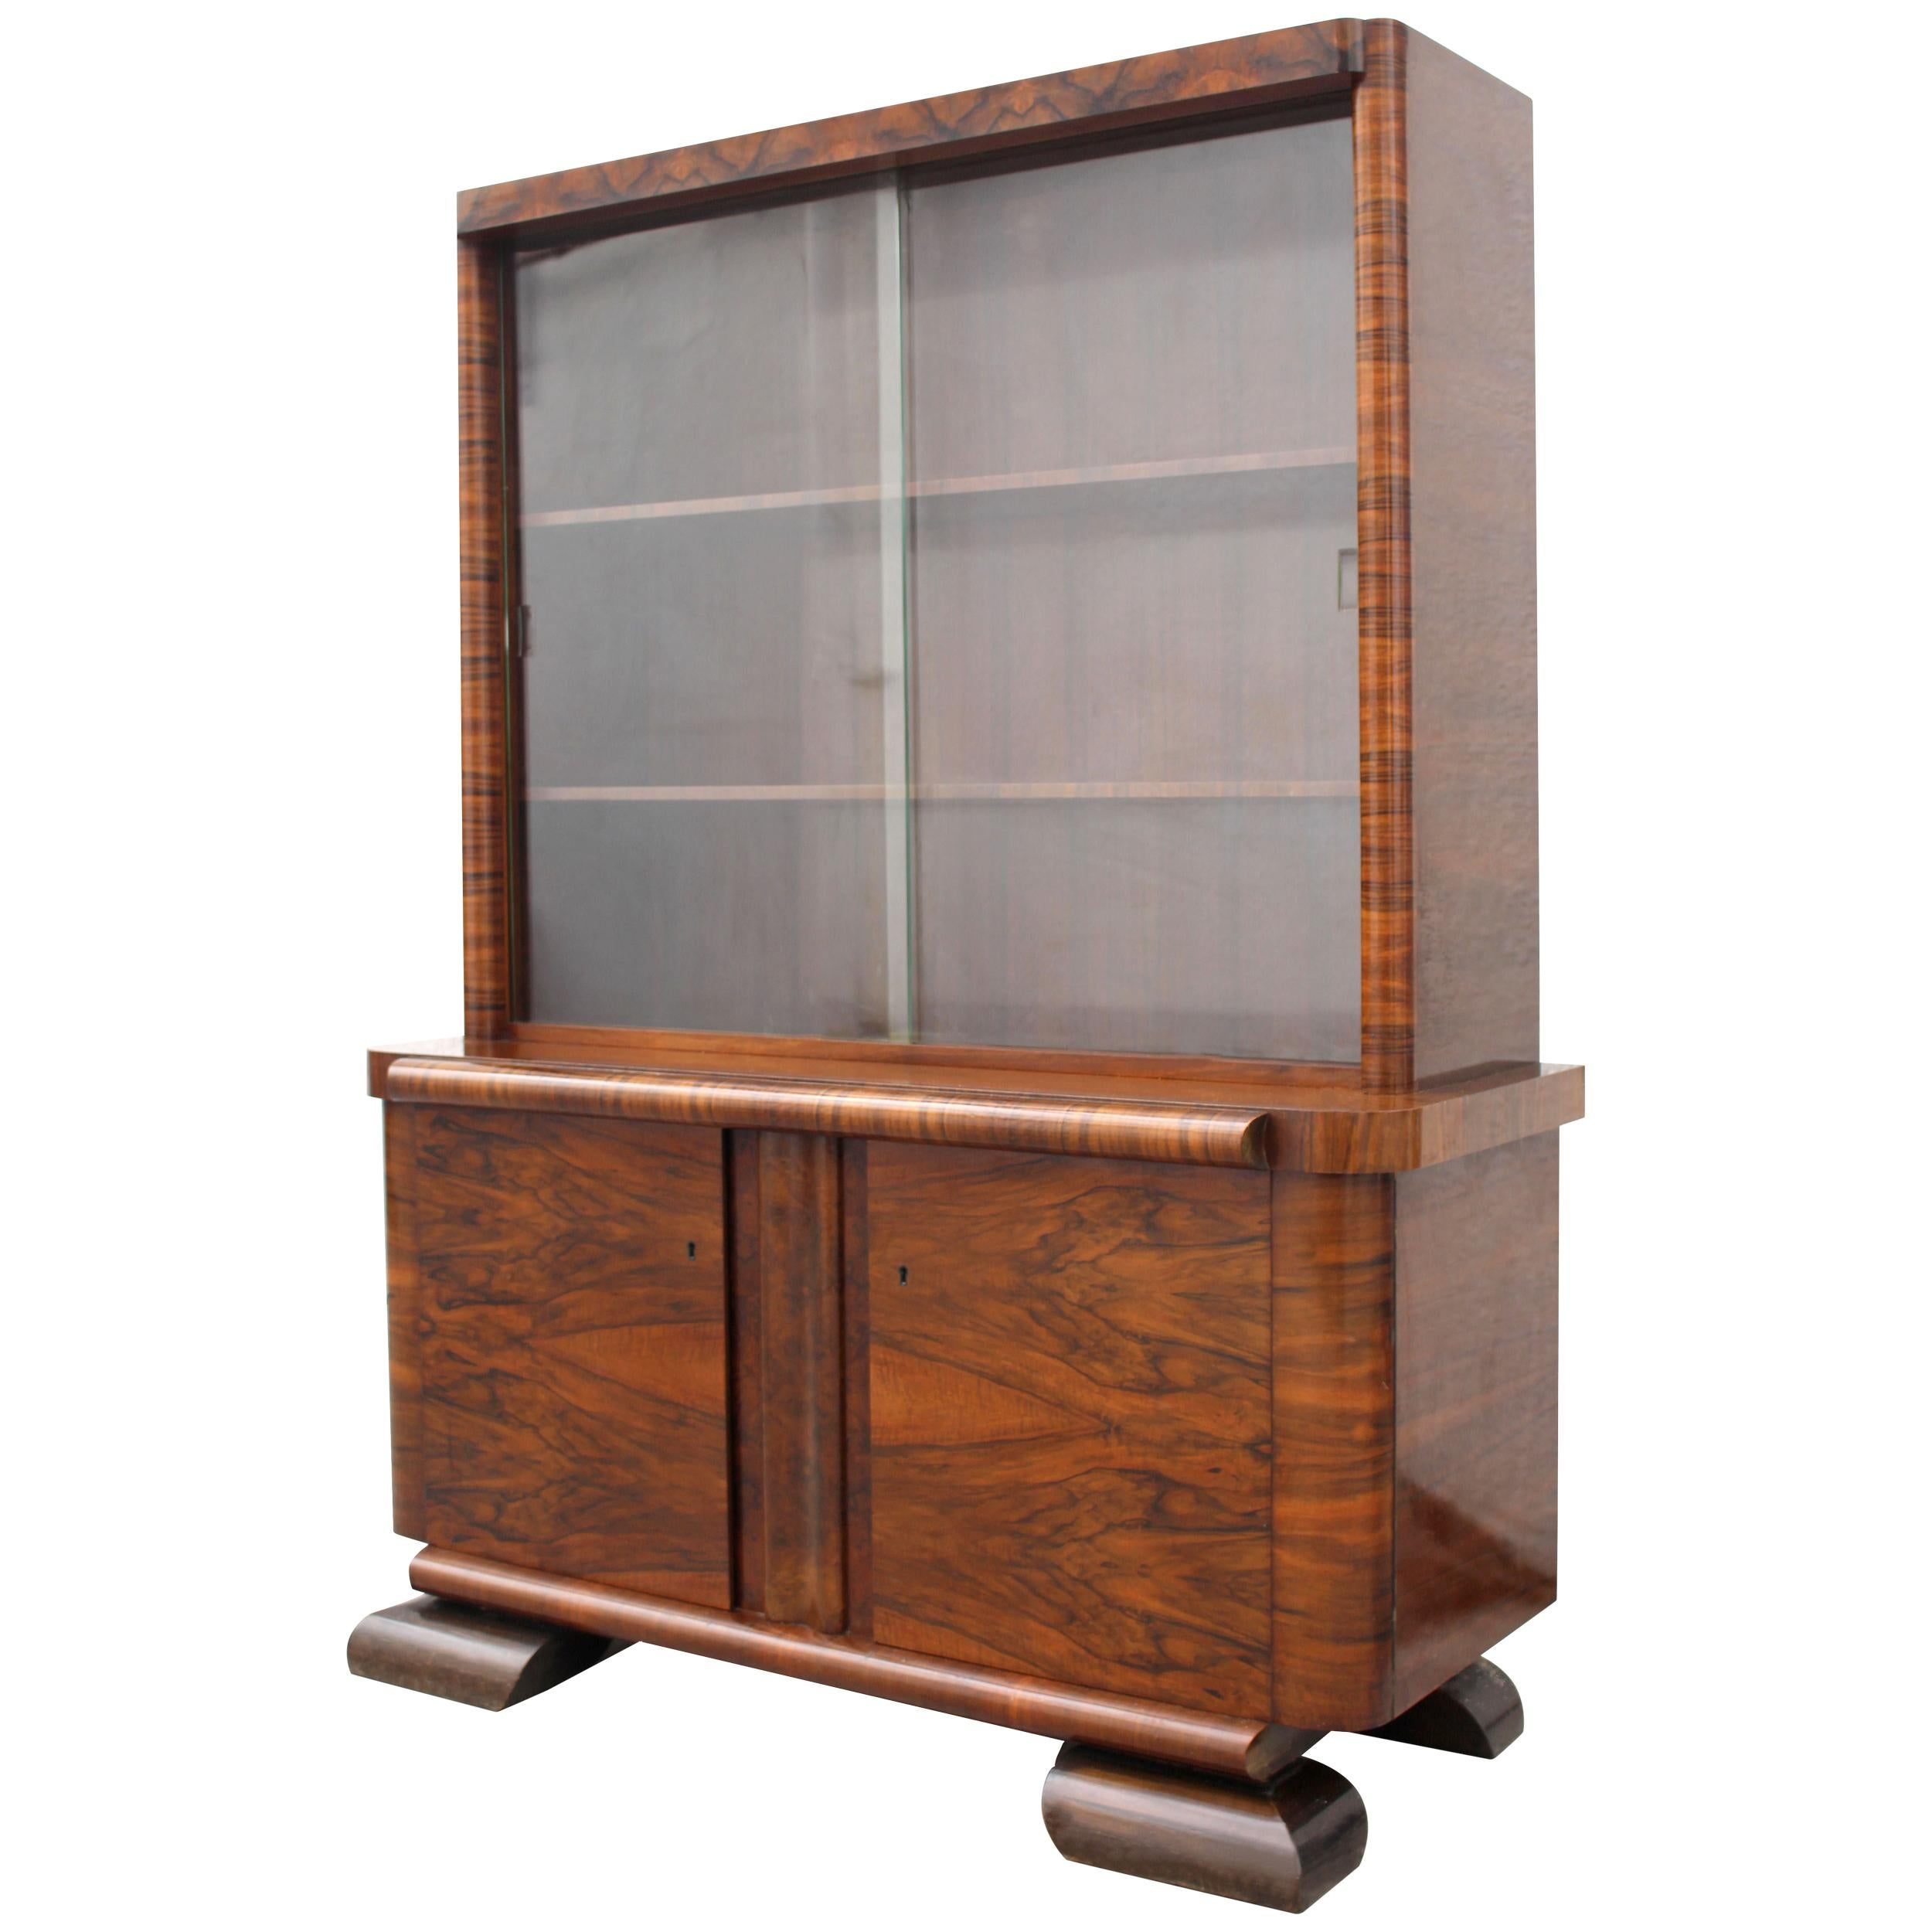 Art Deco Figured Walnut Bookcase, circa 1930